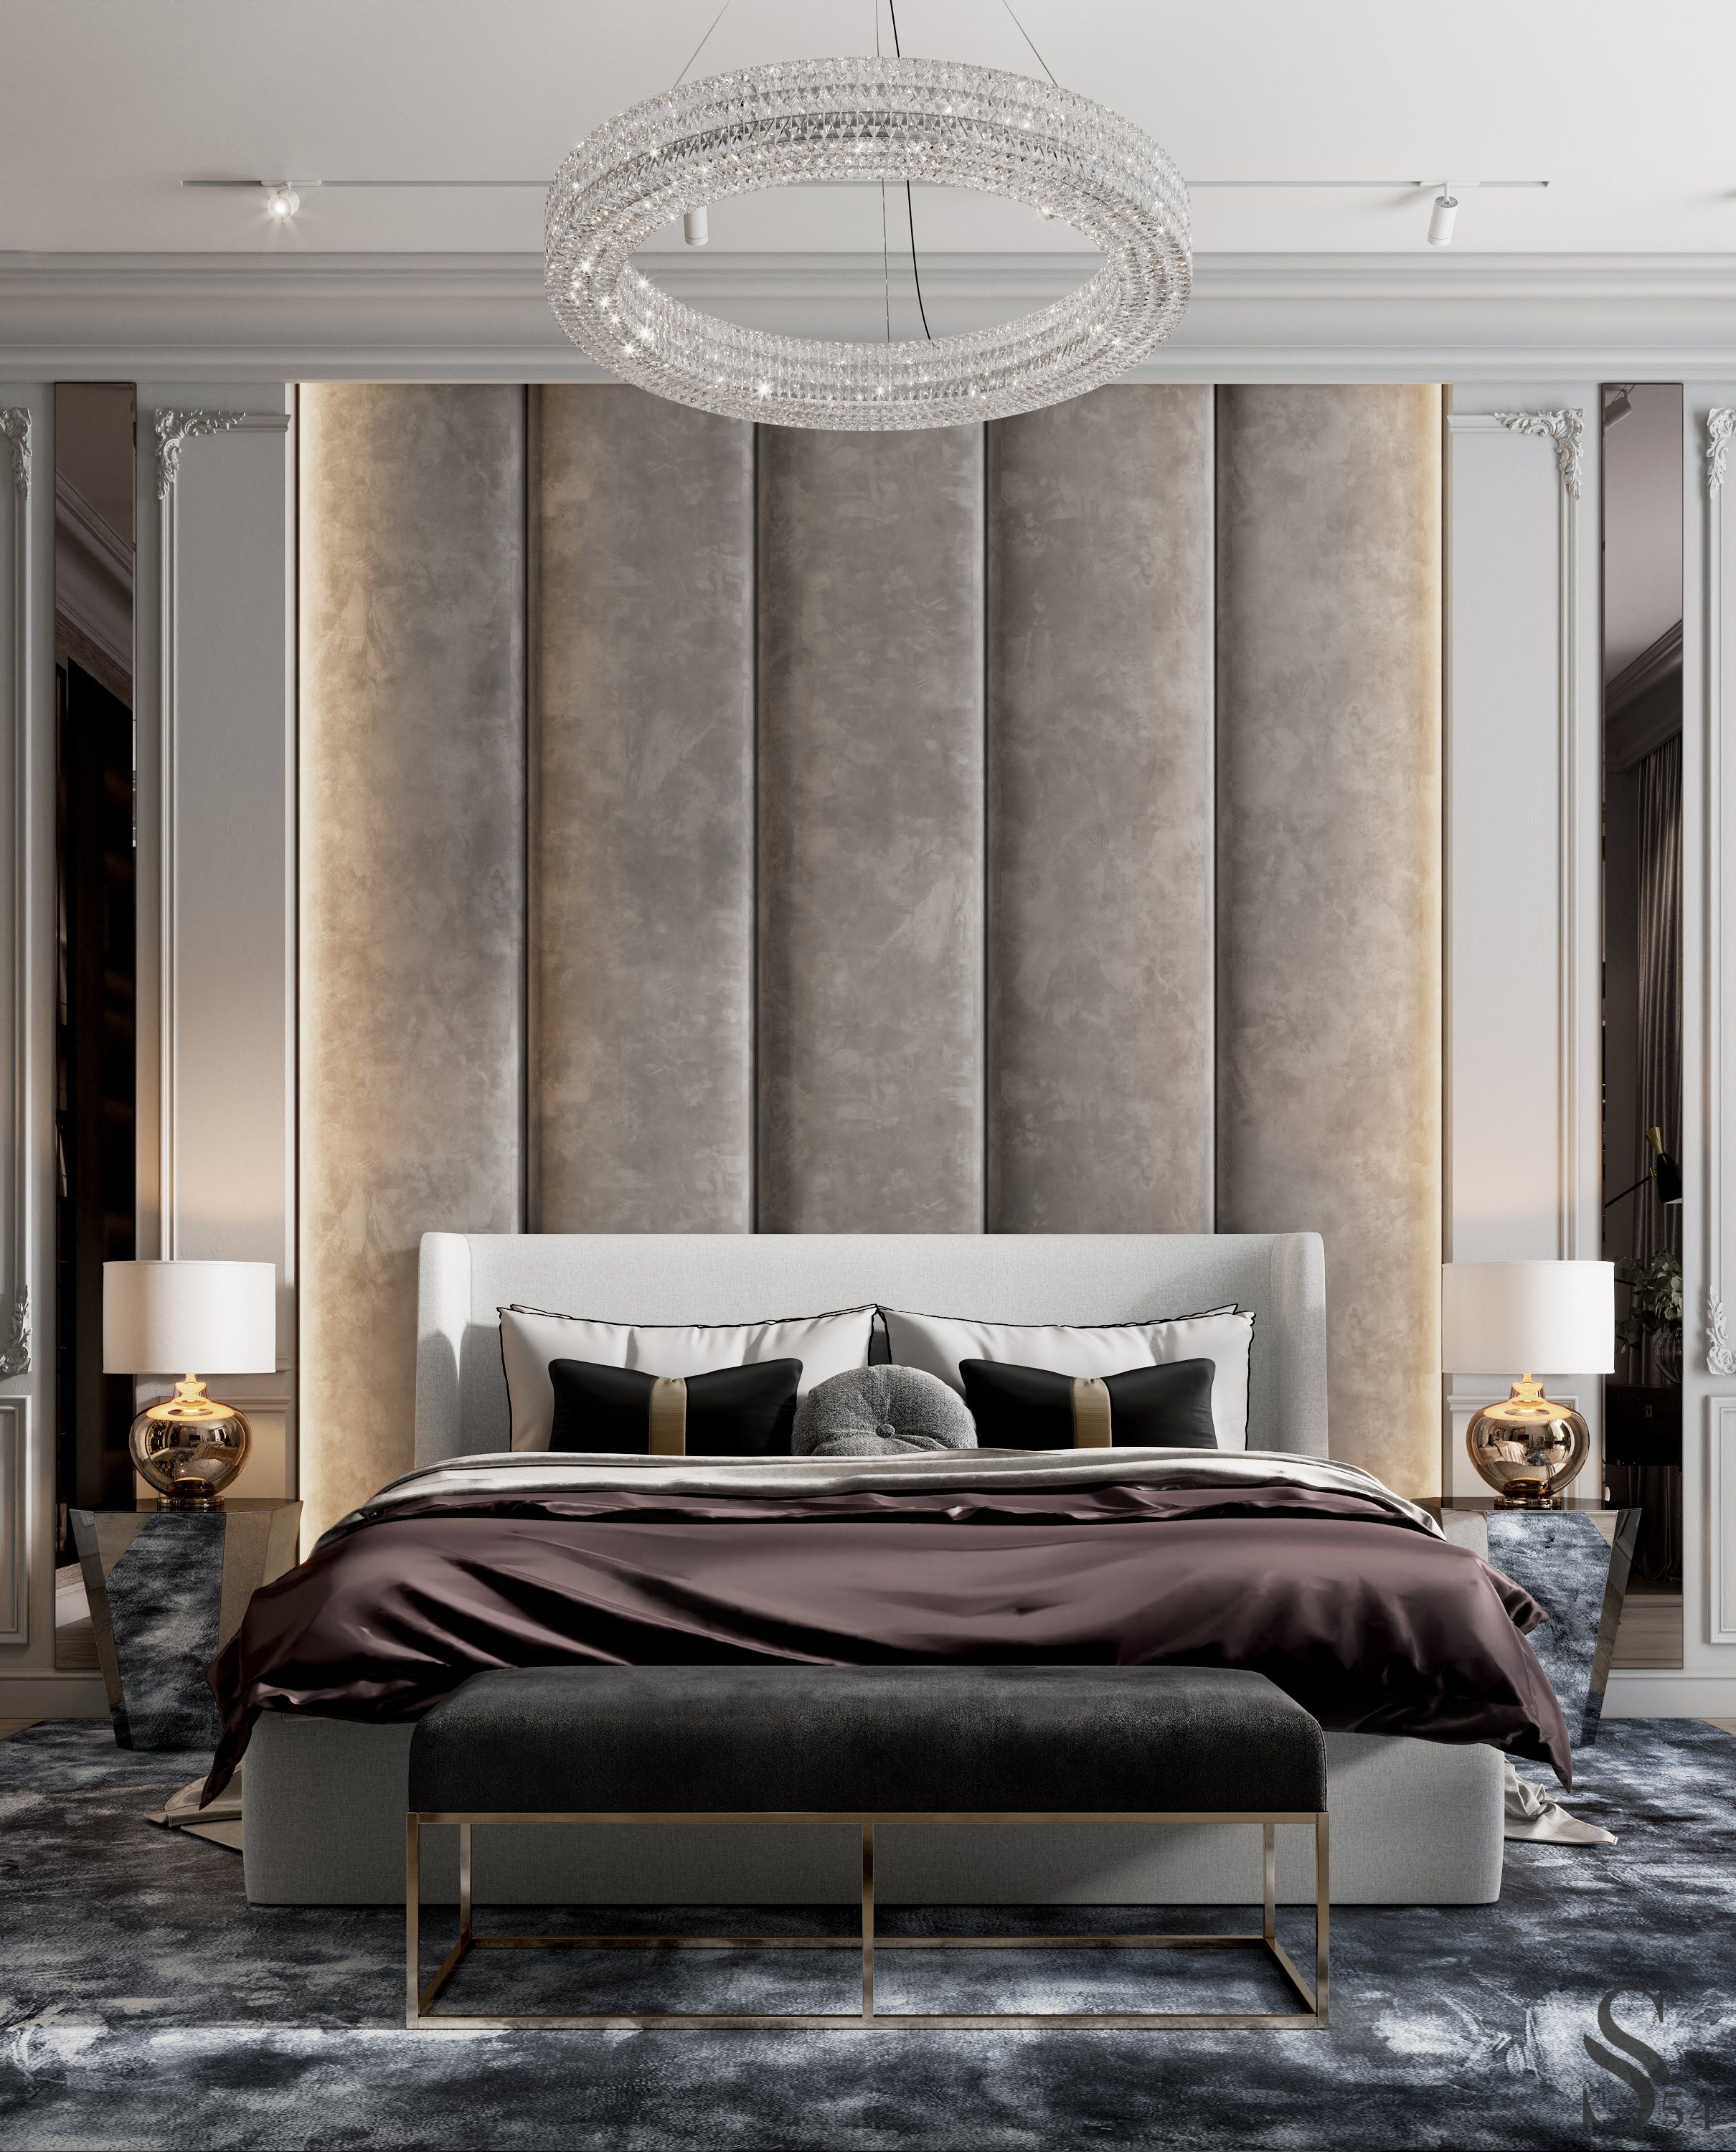 The guest bedroom is more classic. The abundance of custom